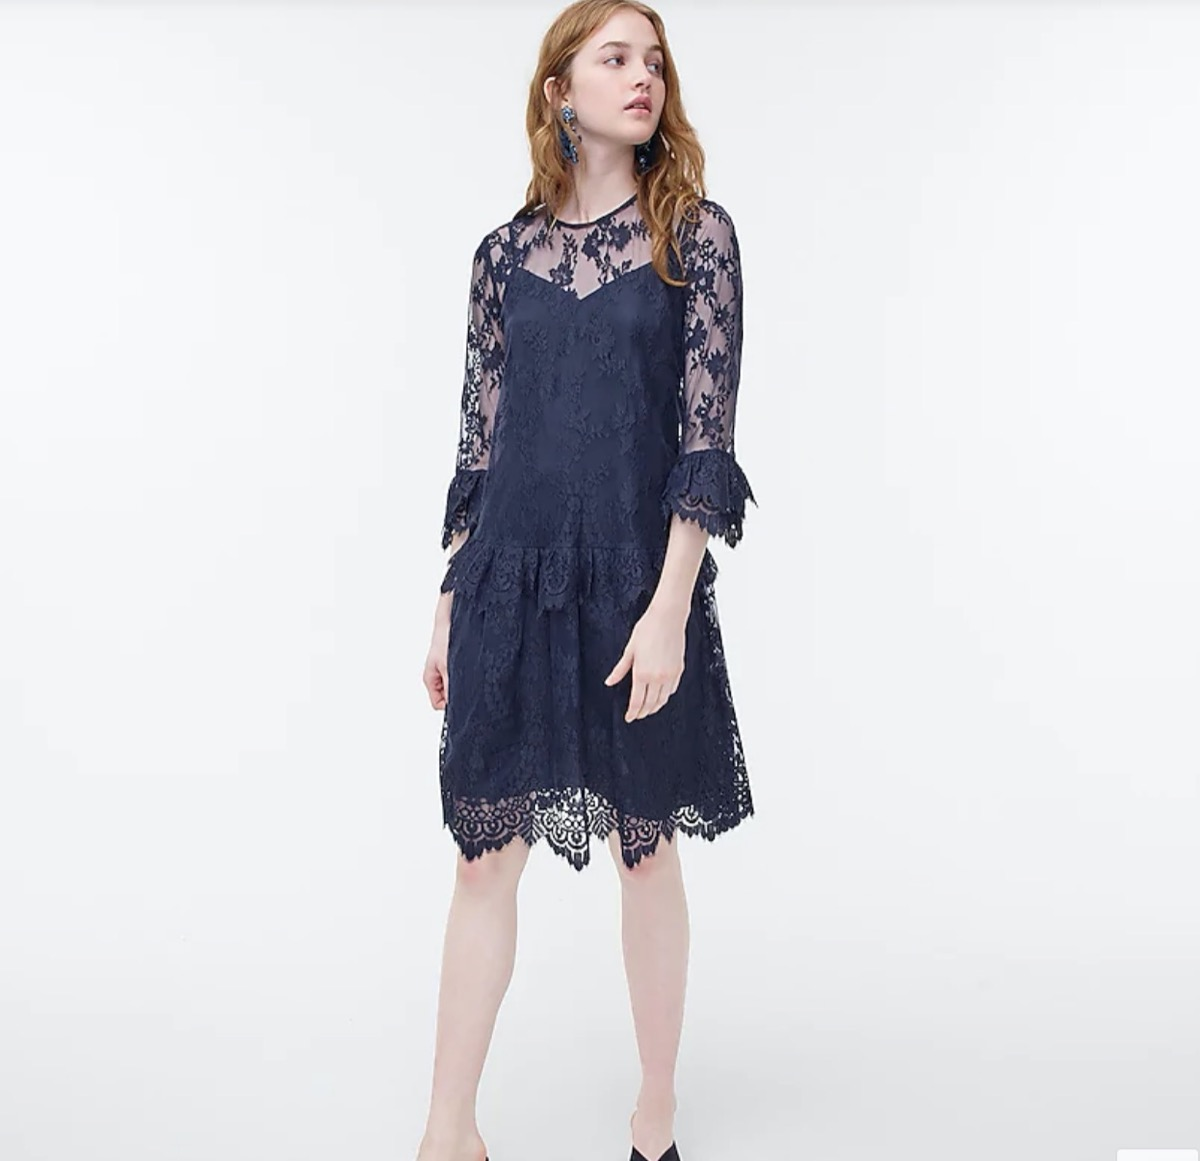 young white woman in blue lace dress